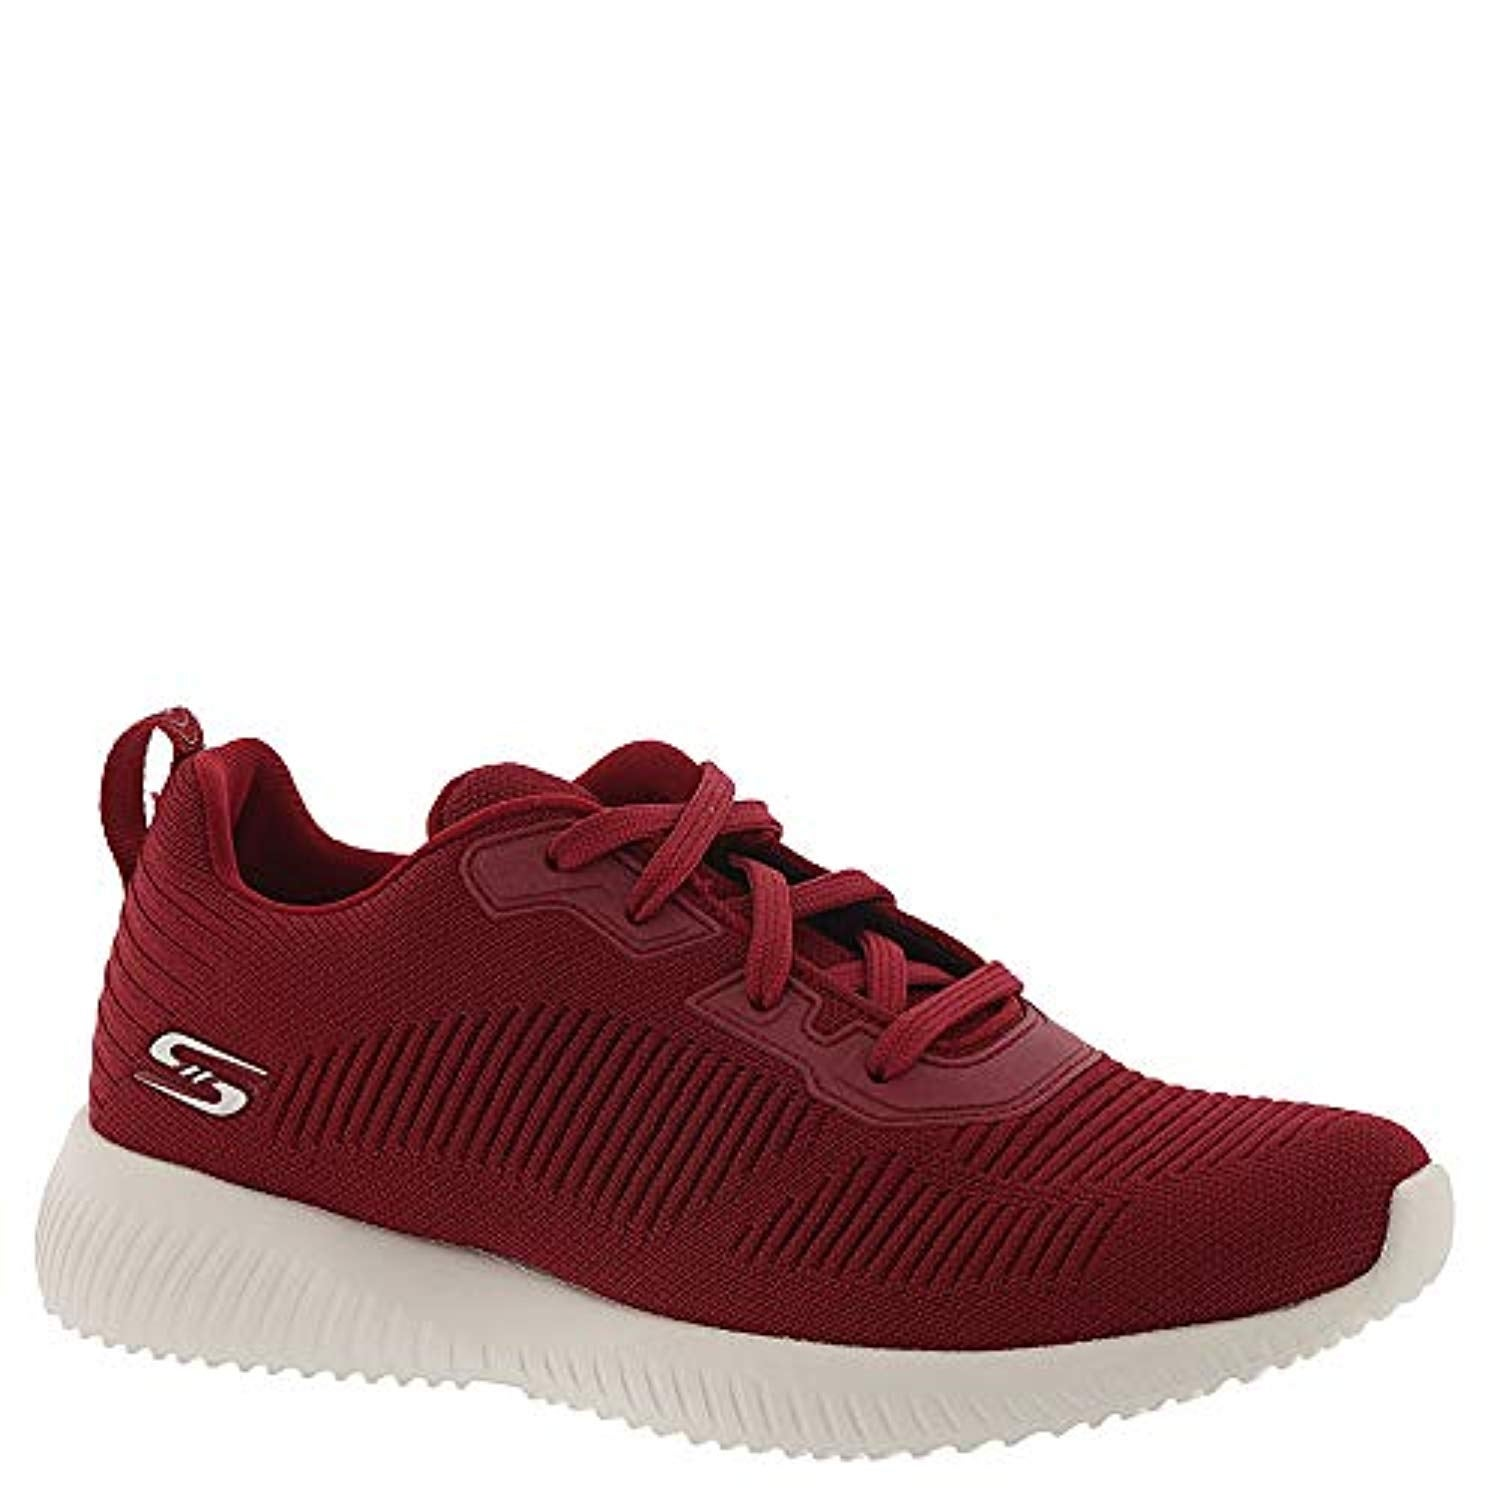 Skechers Special Offers | Find Great Sale Deals Shopping at